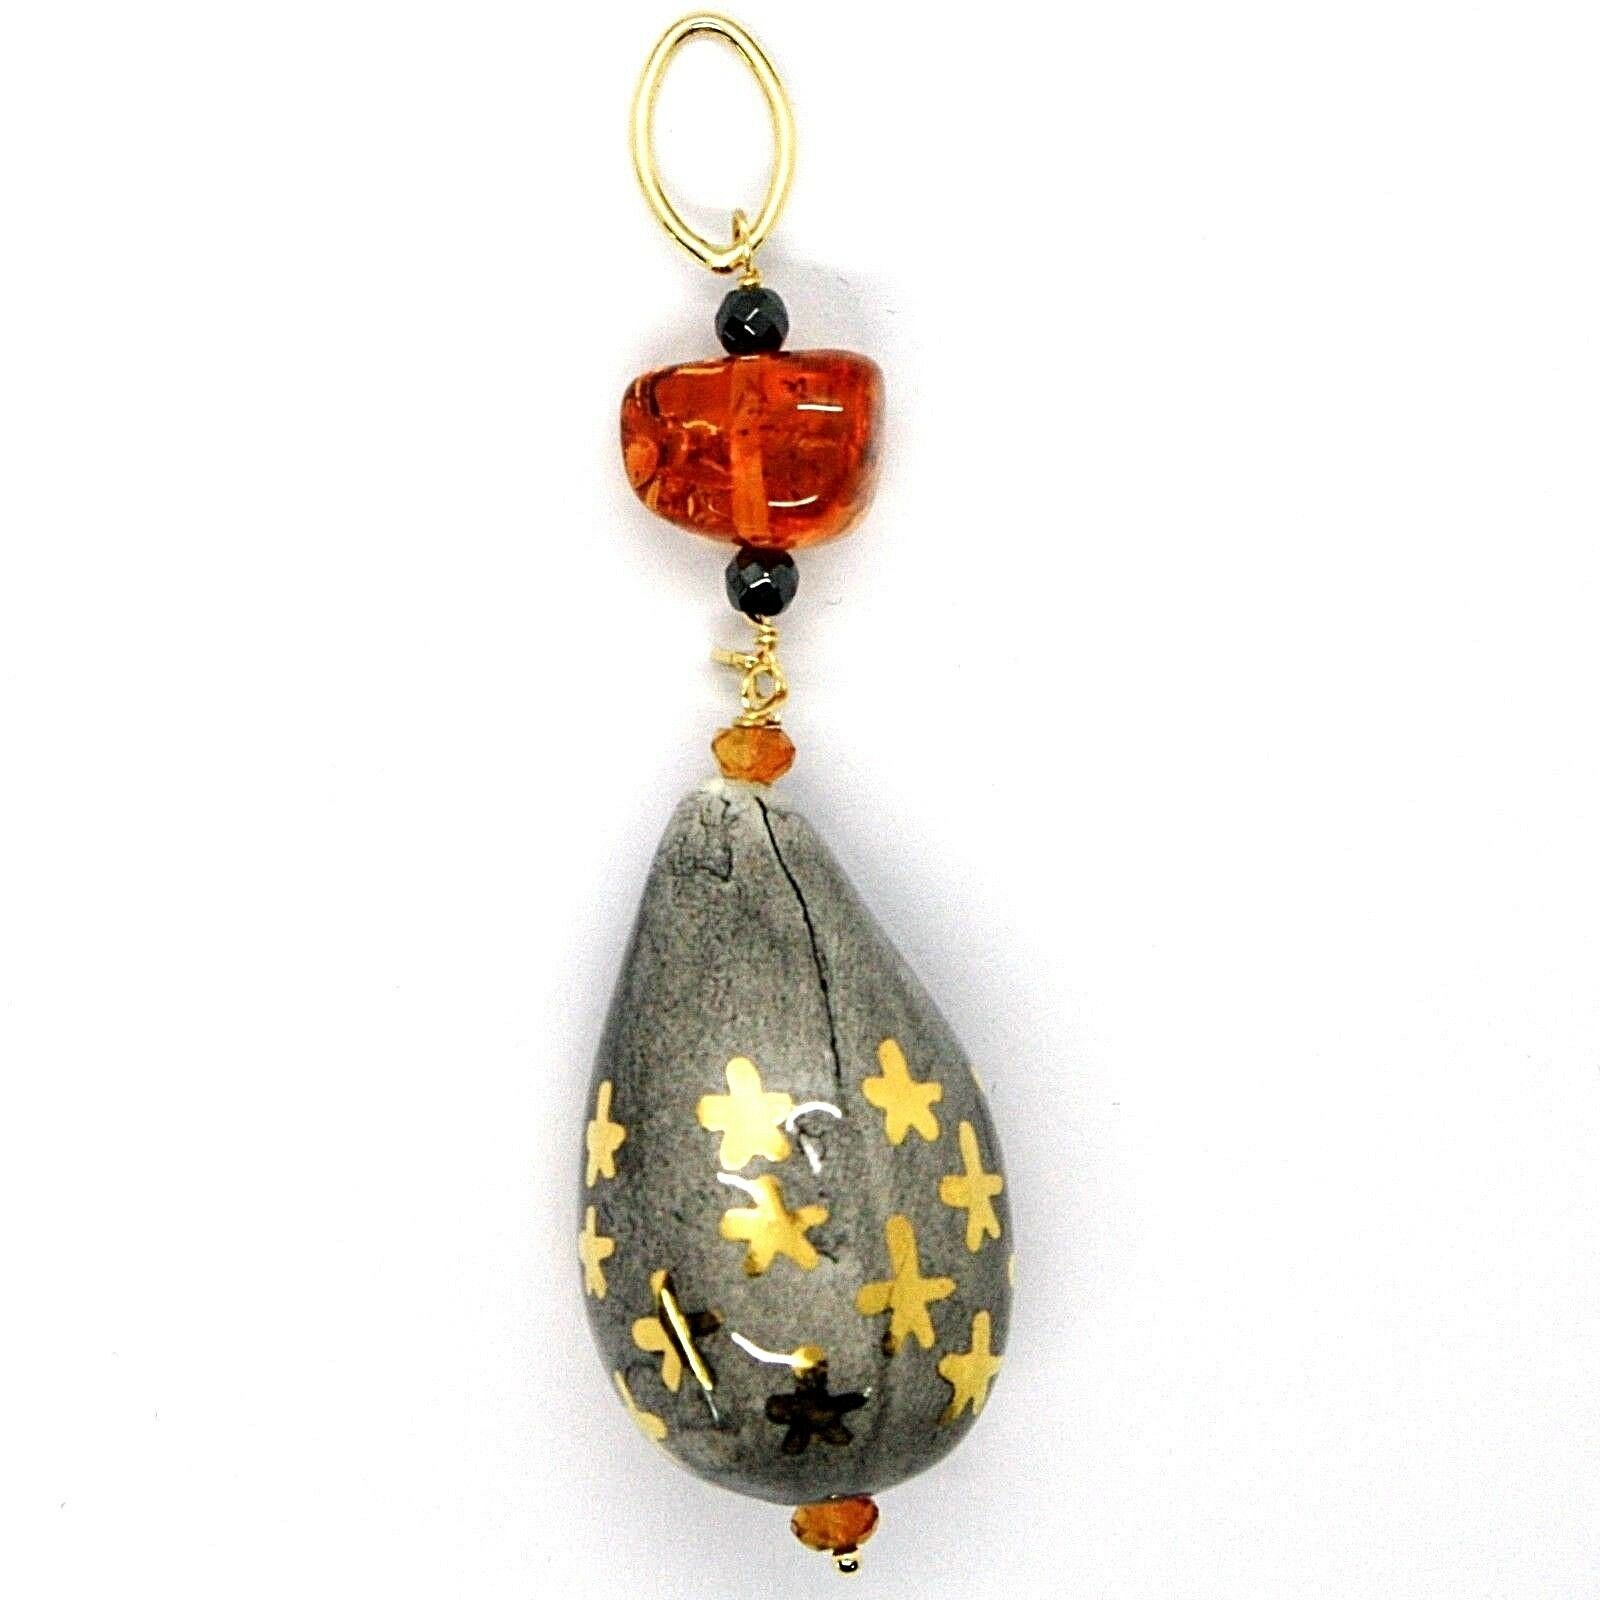 18K YELLOW GOLD PENDANT, AMBER, CITRINE POTTERY DROPS HAND PAINTED IN ITALY STAR